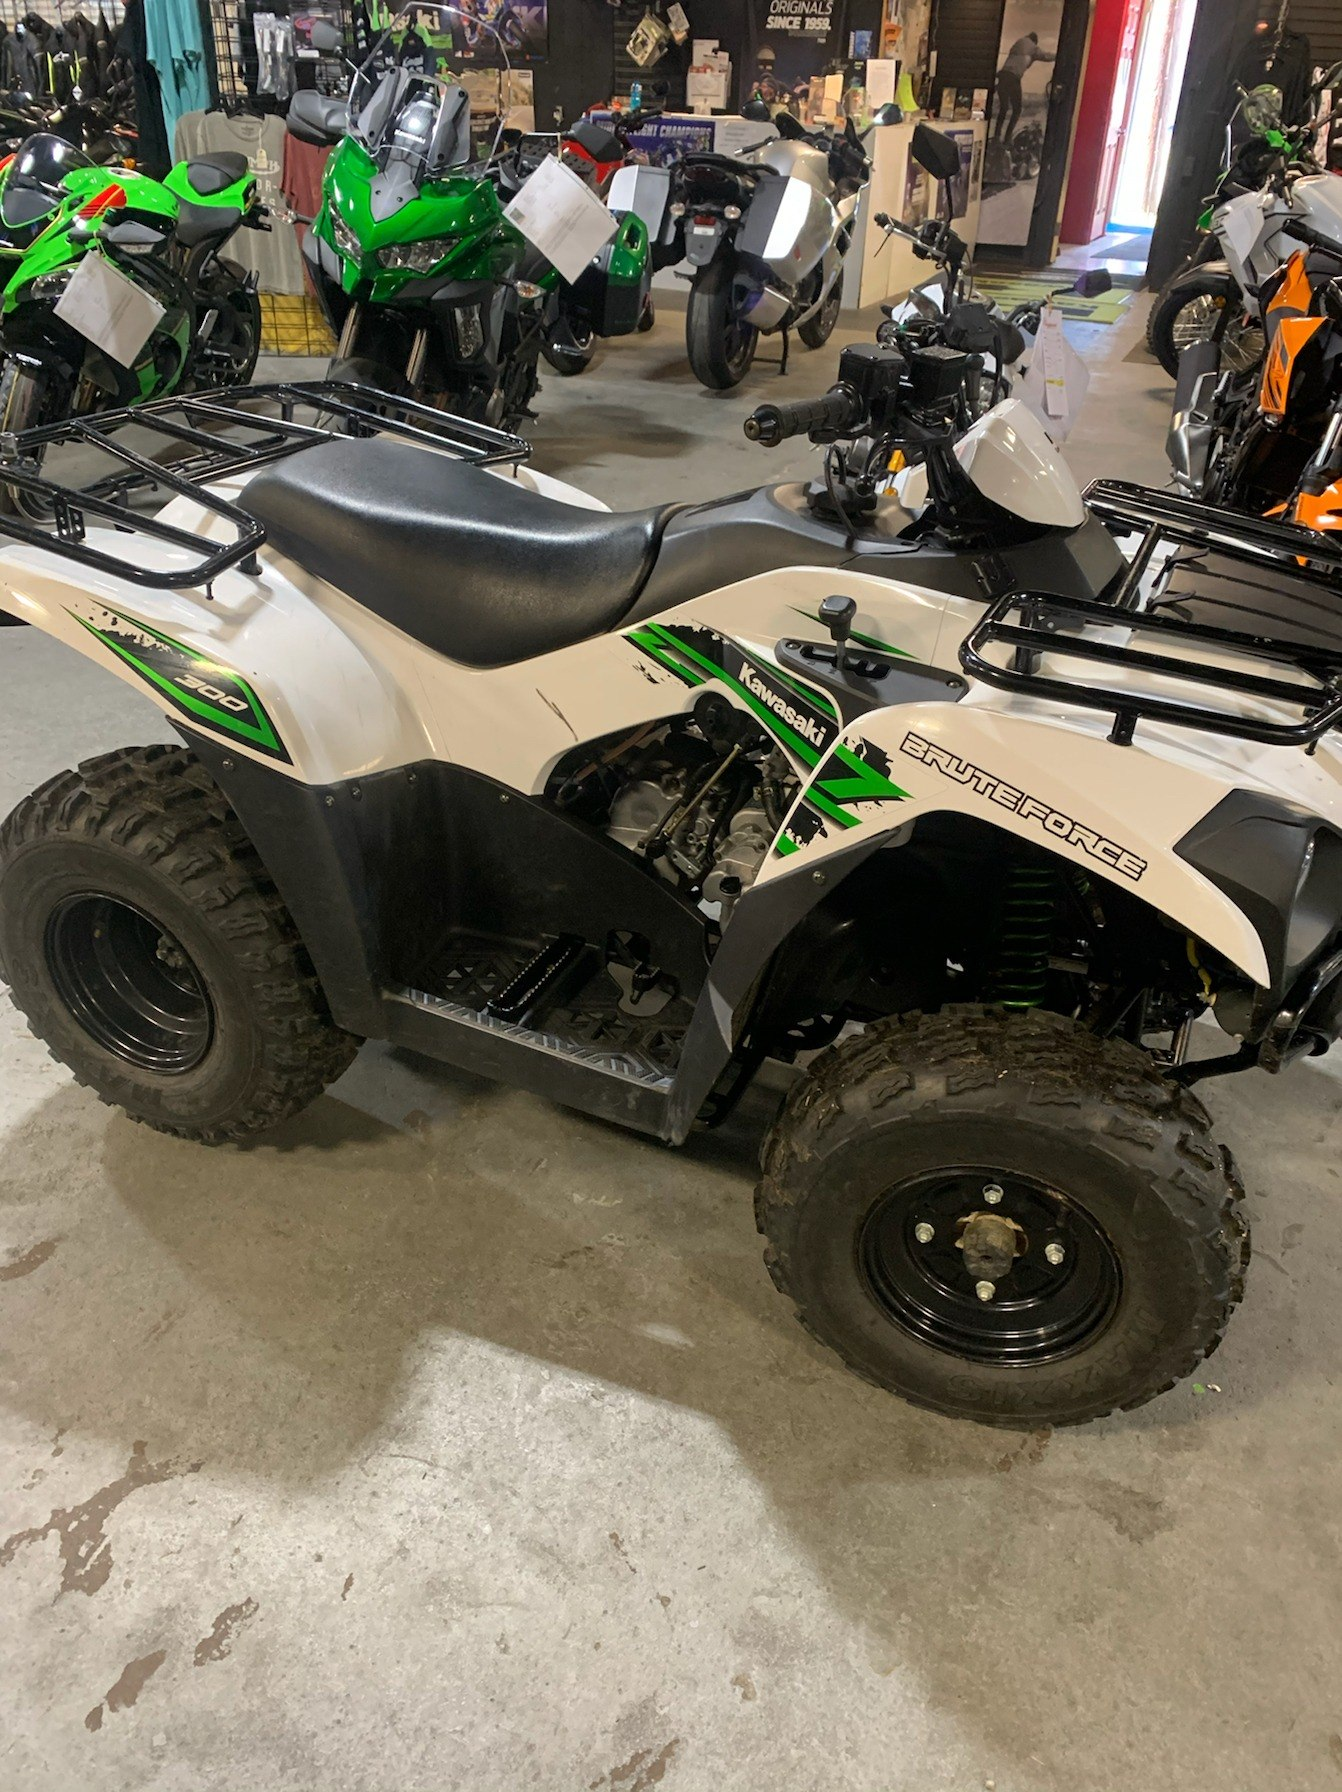 2018 Kawasaki BRUTE FORCE 300 in Kingsport, Tennessee - Photo 5